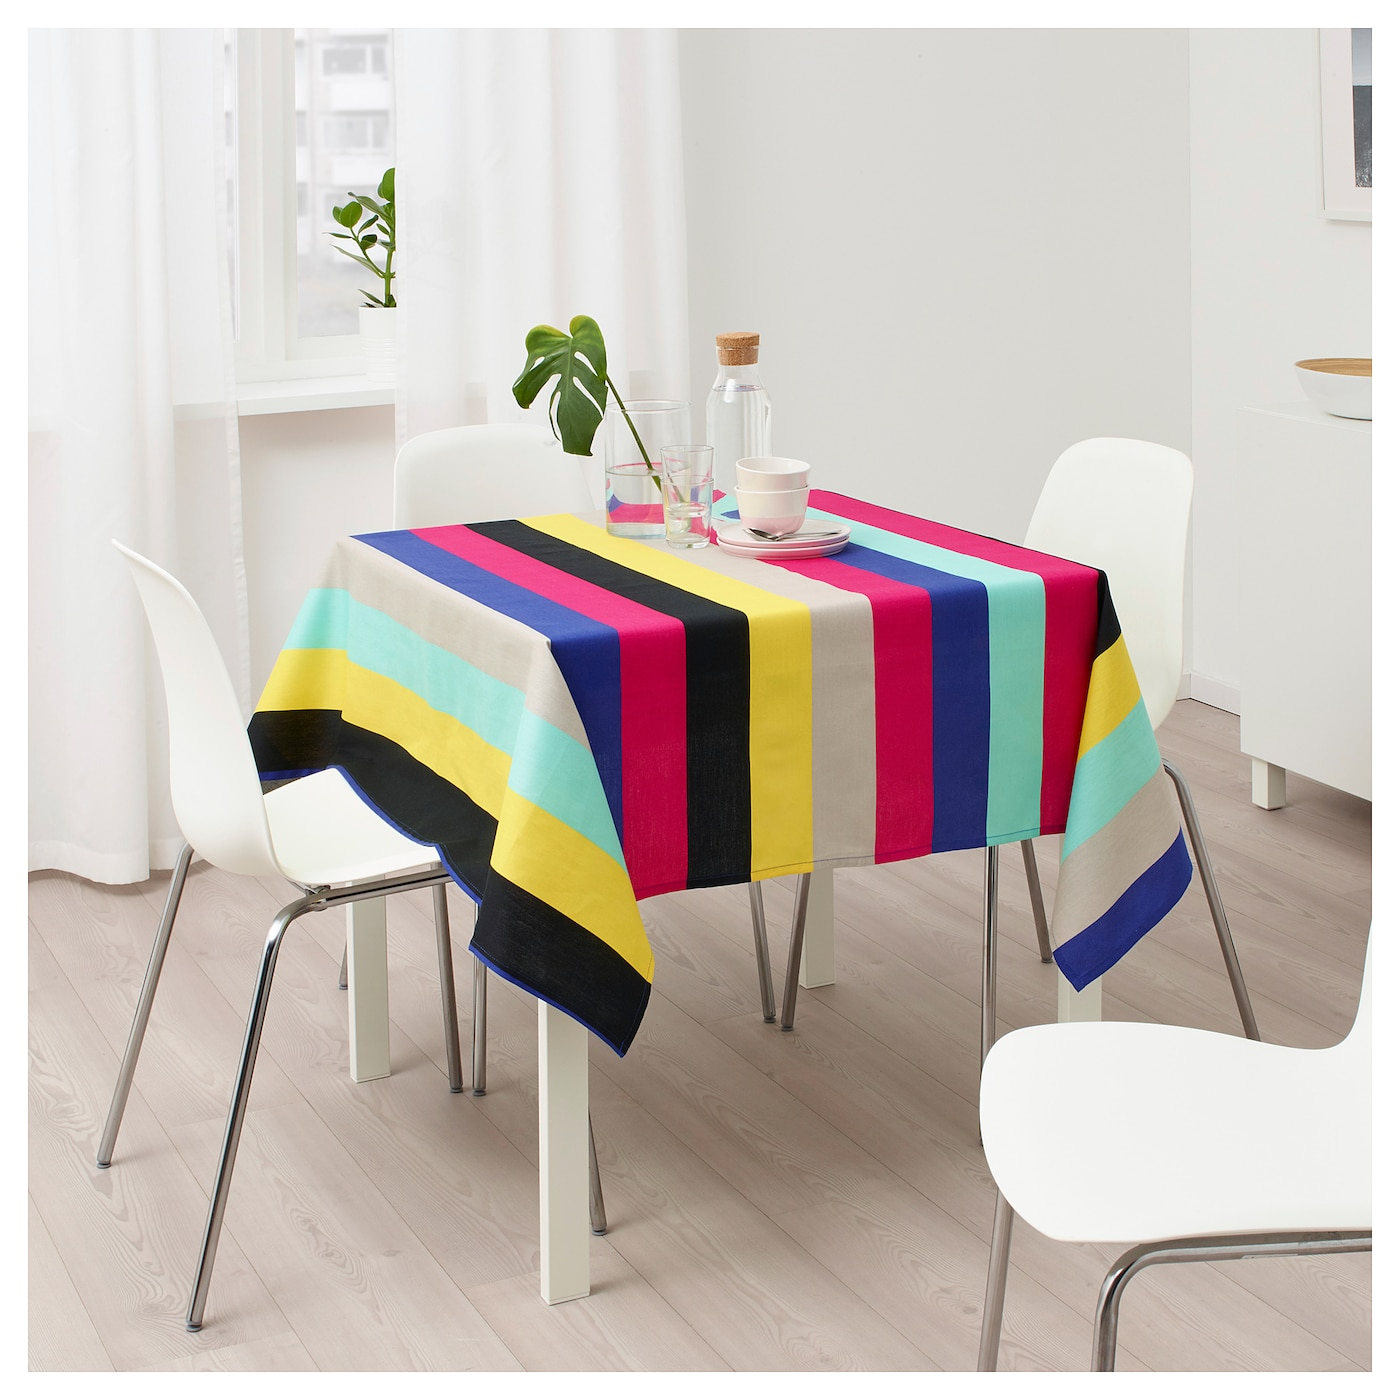 sommar 2018 nappe multicolore ray 145x145 cm ikea. Black Bedroom Furniture Sets. Home Design Ideas